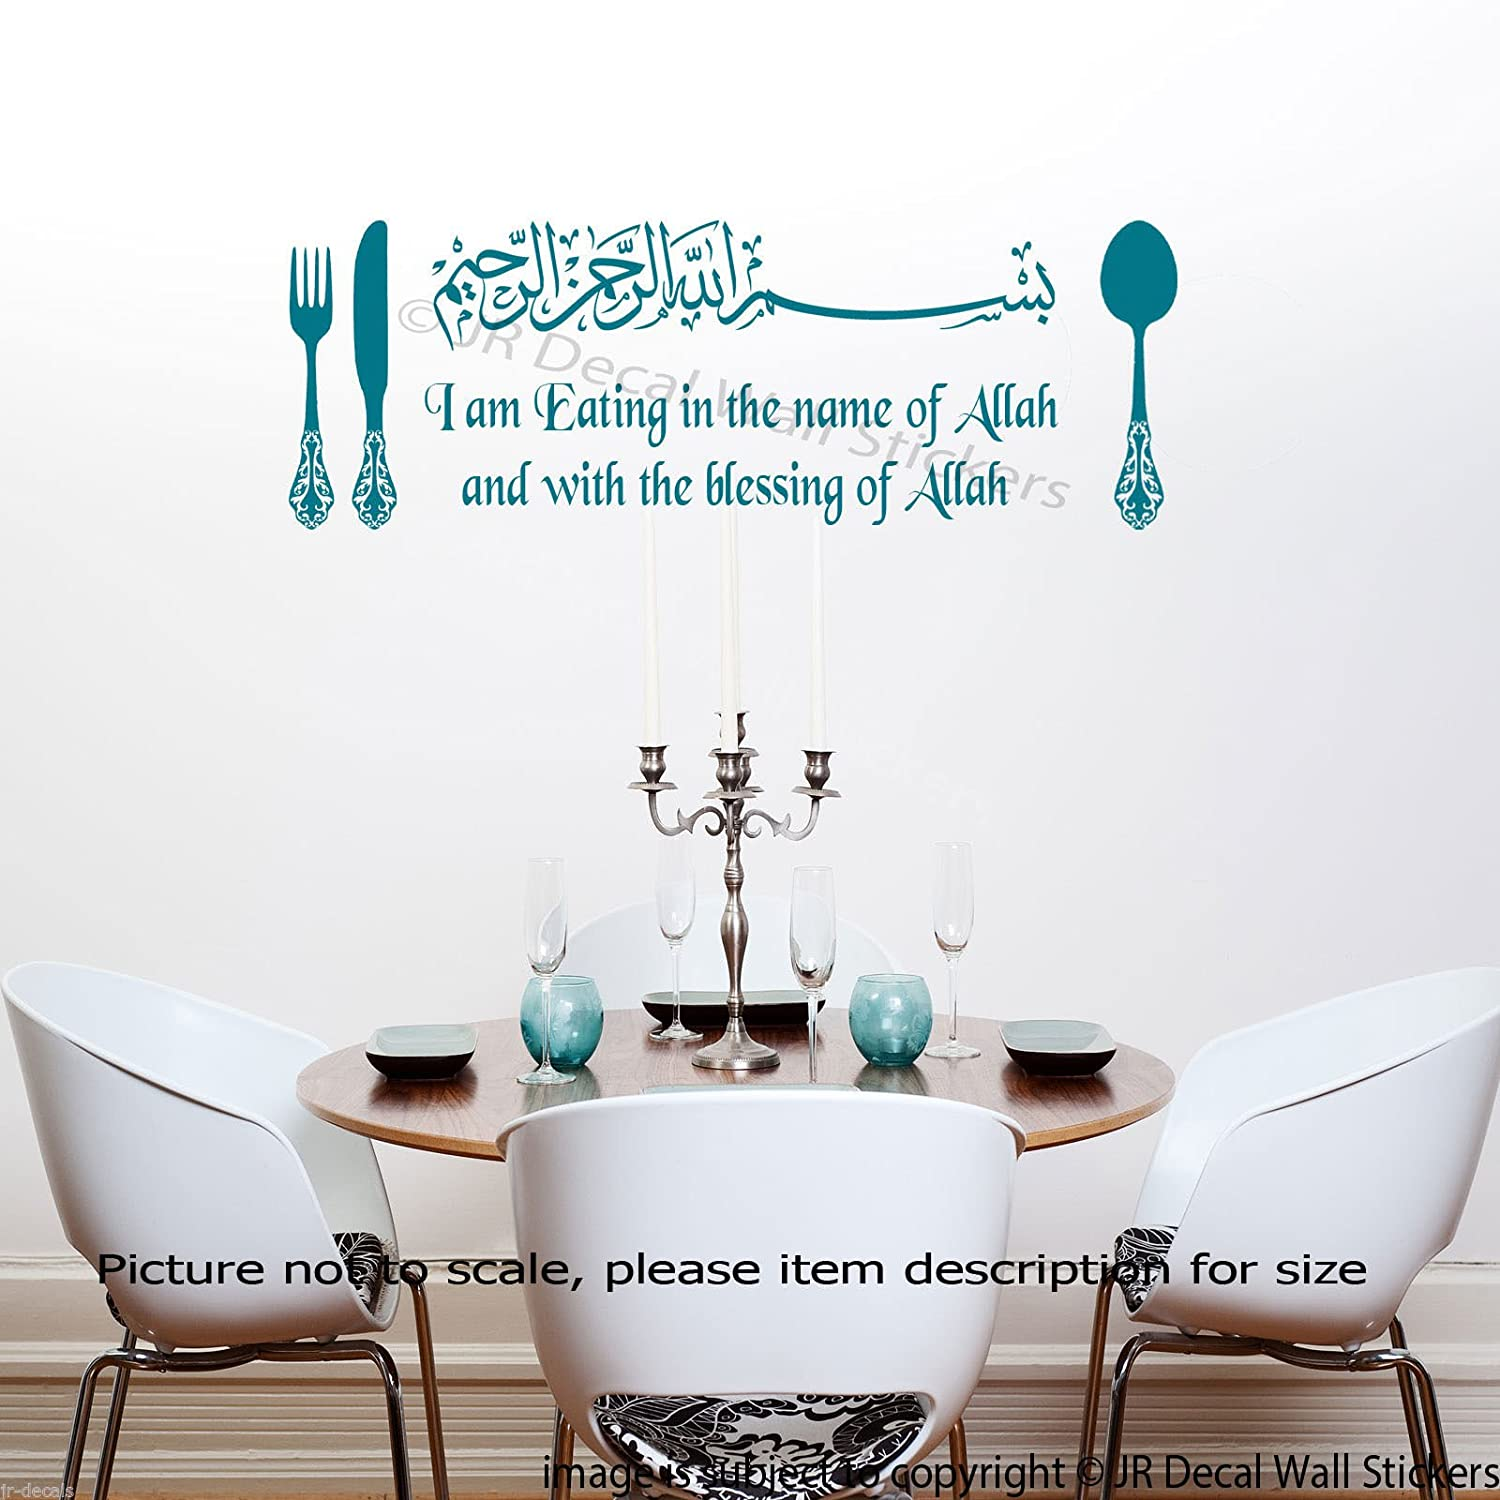 Amazon.com: DINING KITCHEN ISLAMIC Wall Art Stickers Bismillah With English  Translation U0027Eating In The Name Of ALLAHu0027 Arabic Art Removable Vinyl Wall  Decals ...